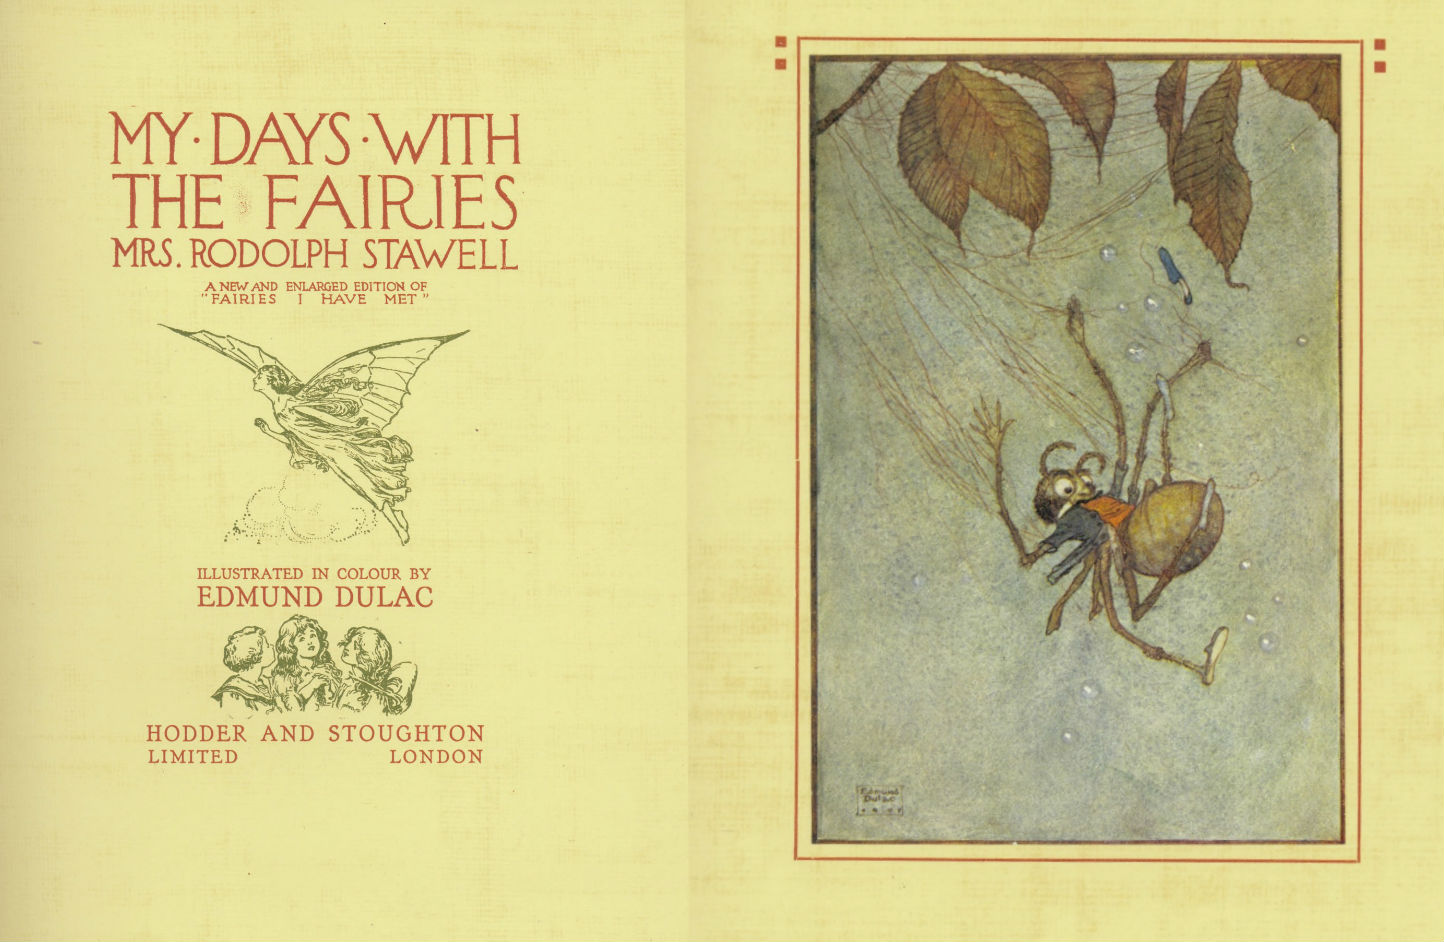 My-Days-with-the-Fairies cover and image